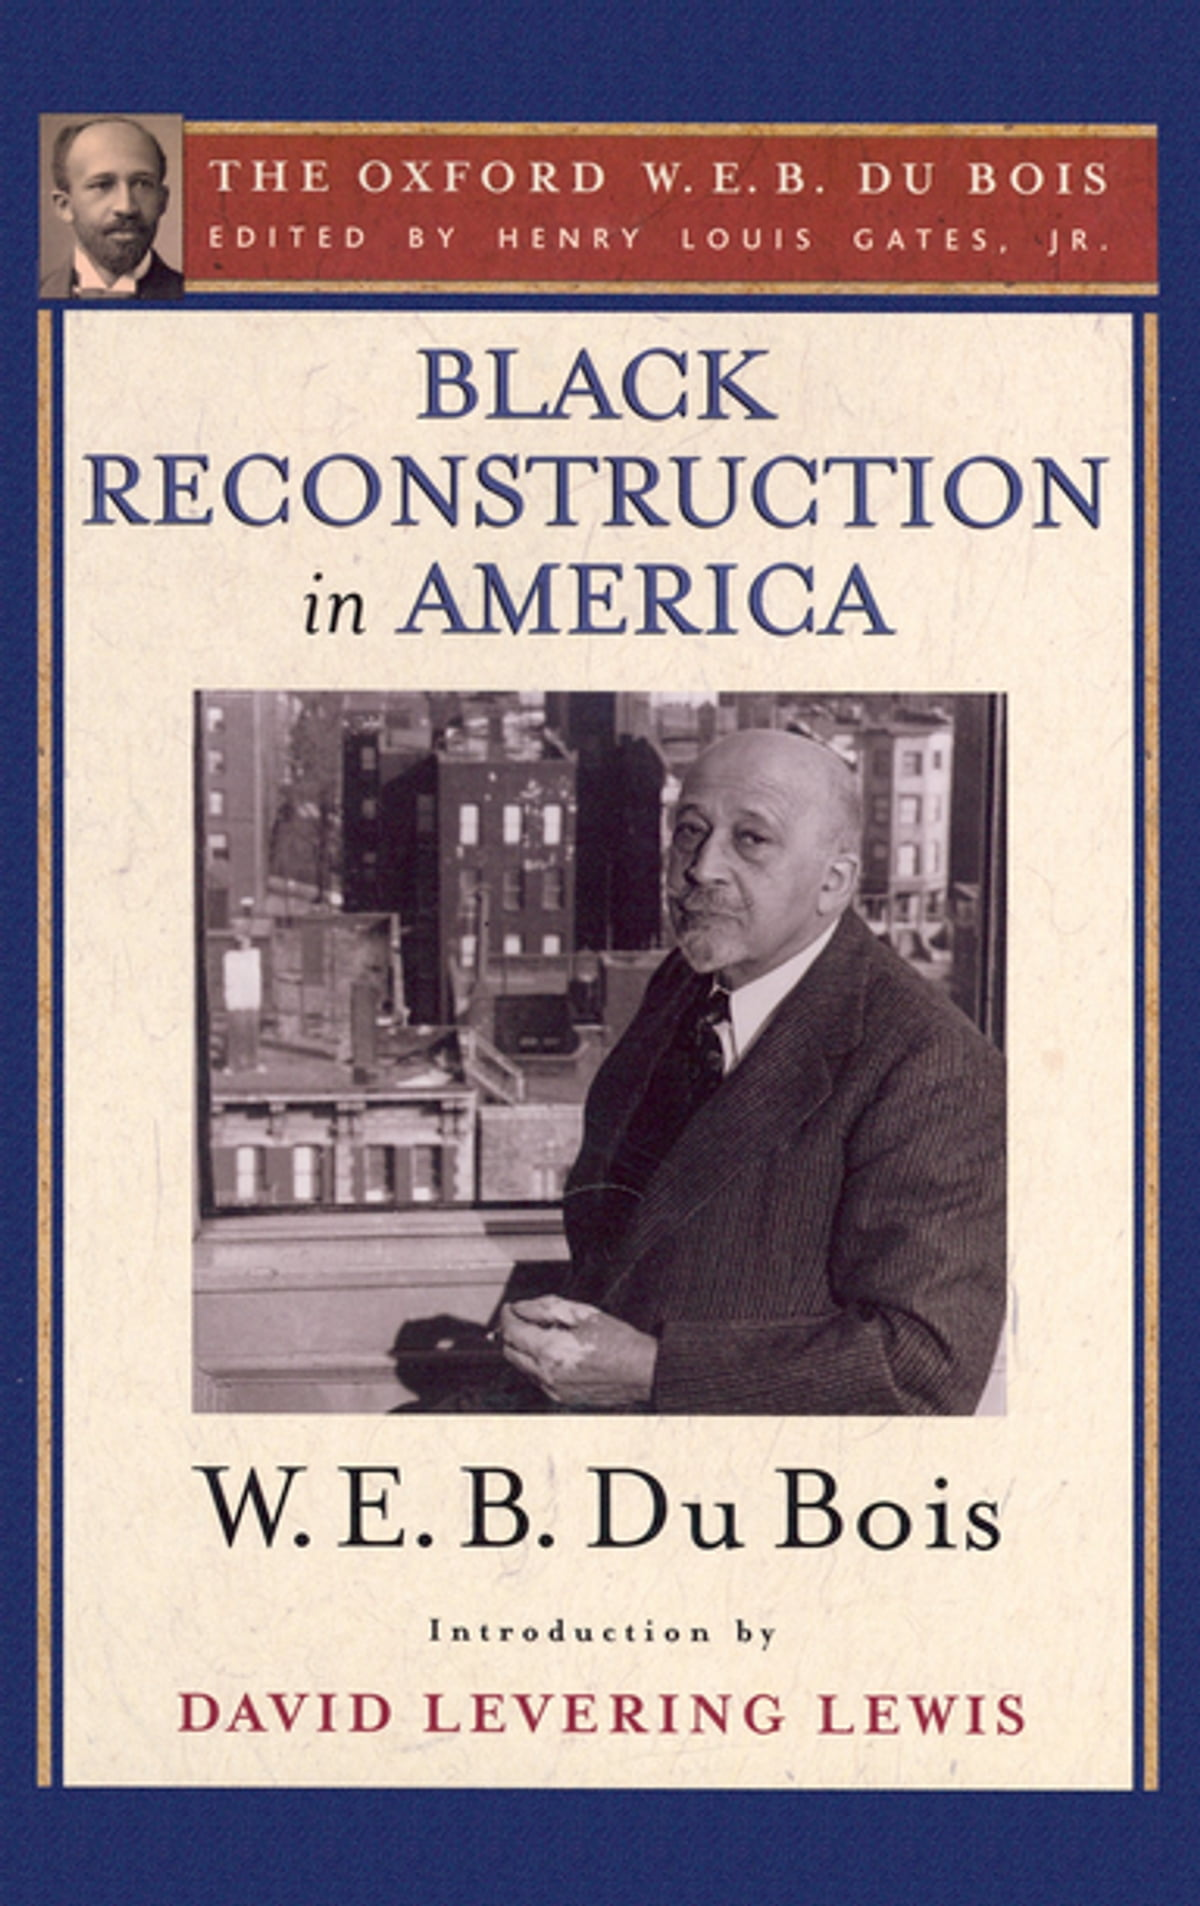 Sample High School Essay Black Reconstruction In America The Oxford W E B Du Bois Ebook By W  E B Du Bois    Rakuten Kobo Essay About Healthy Lifestyle also Animal Testing Essay Thesis Black Reconstruction In America The Oxford W E B Du Bois Ebook  What Is Thesis In Essay